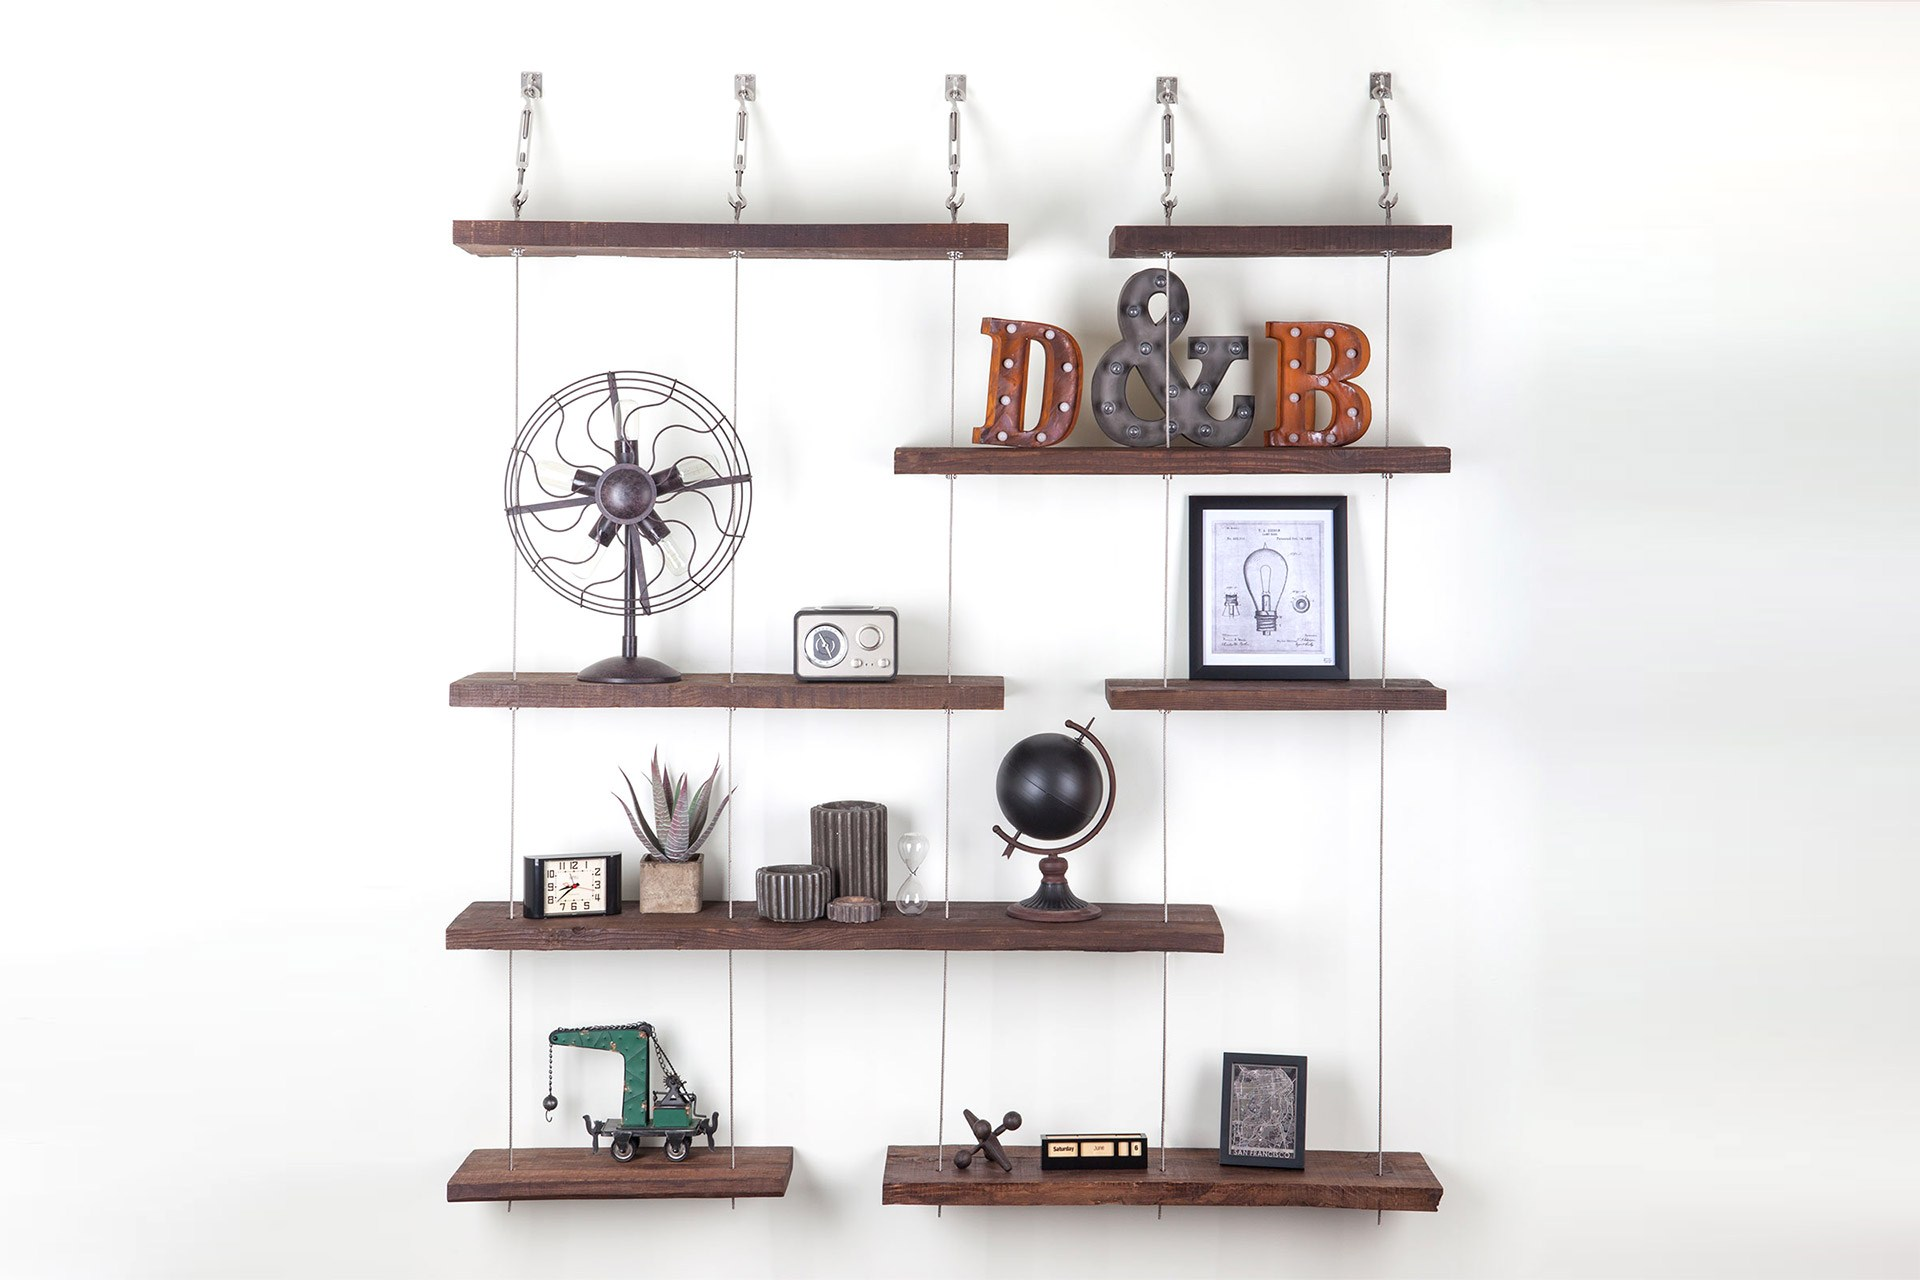 floating shelf deep nupemagazine turnbuckle shelves wall models black hanging inch work shelving where can find coat tree self stick brackets ikea small entrance hall ideas glass